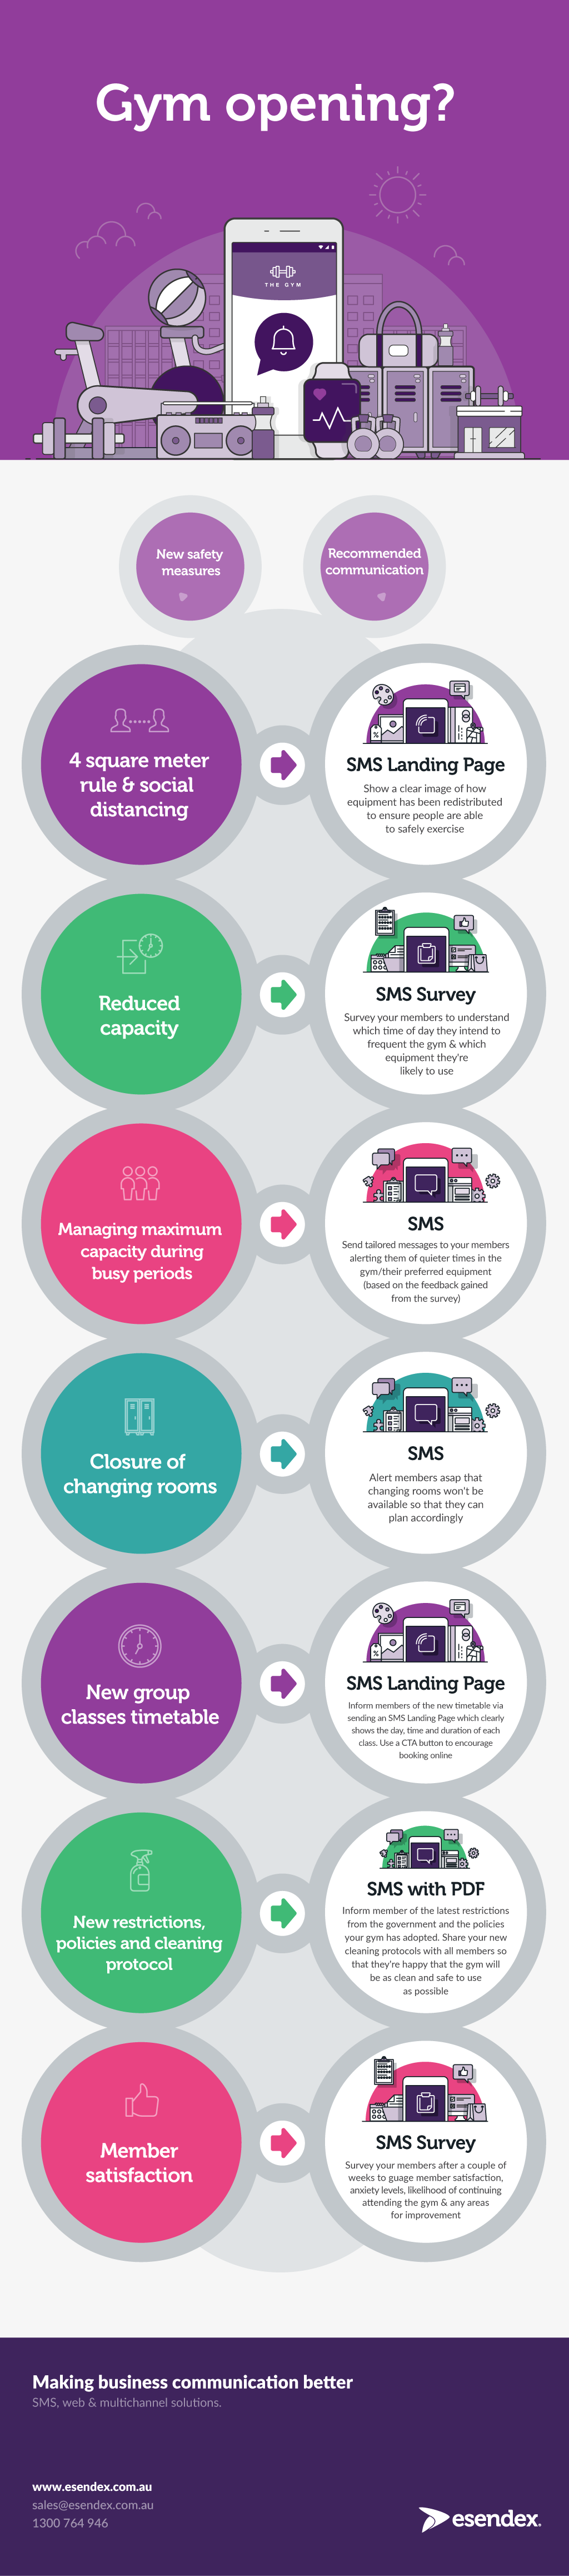 An Infographic on what product to use for gyms to communicate the different safety measures